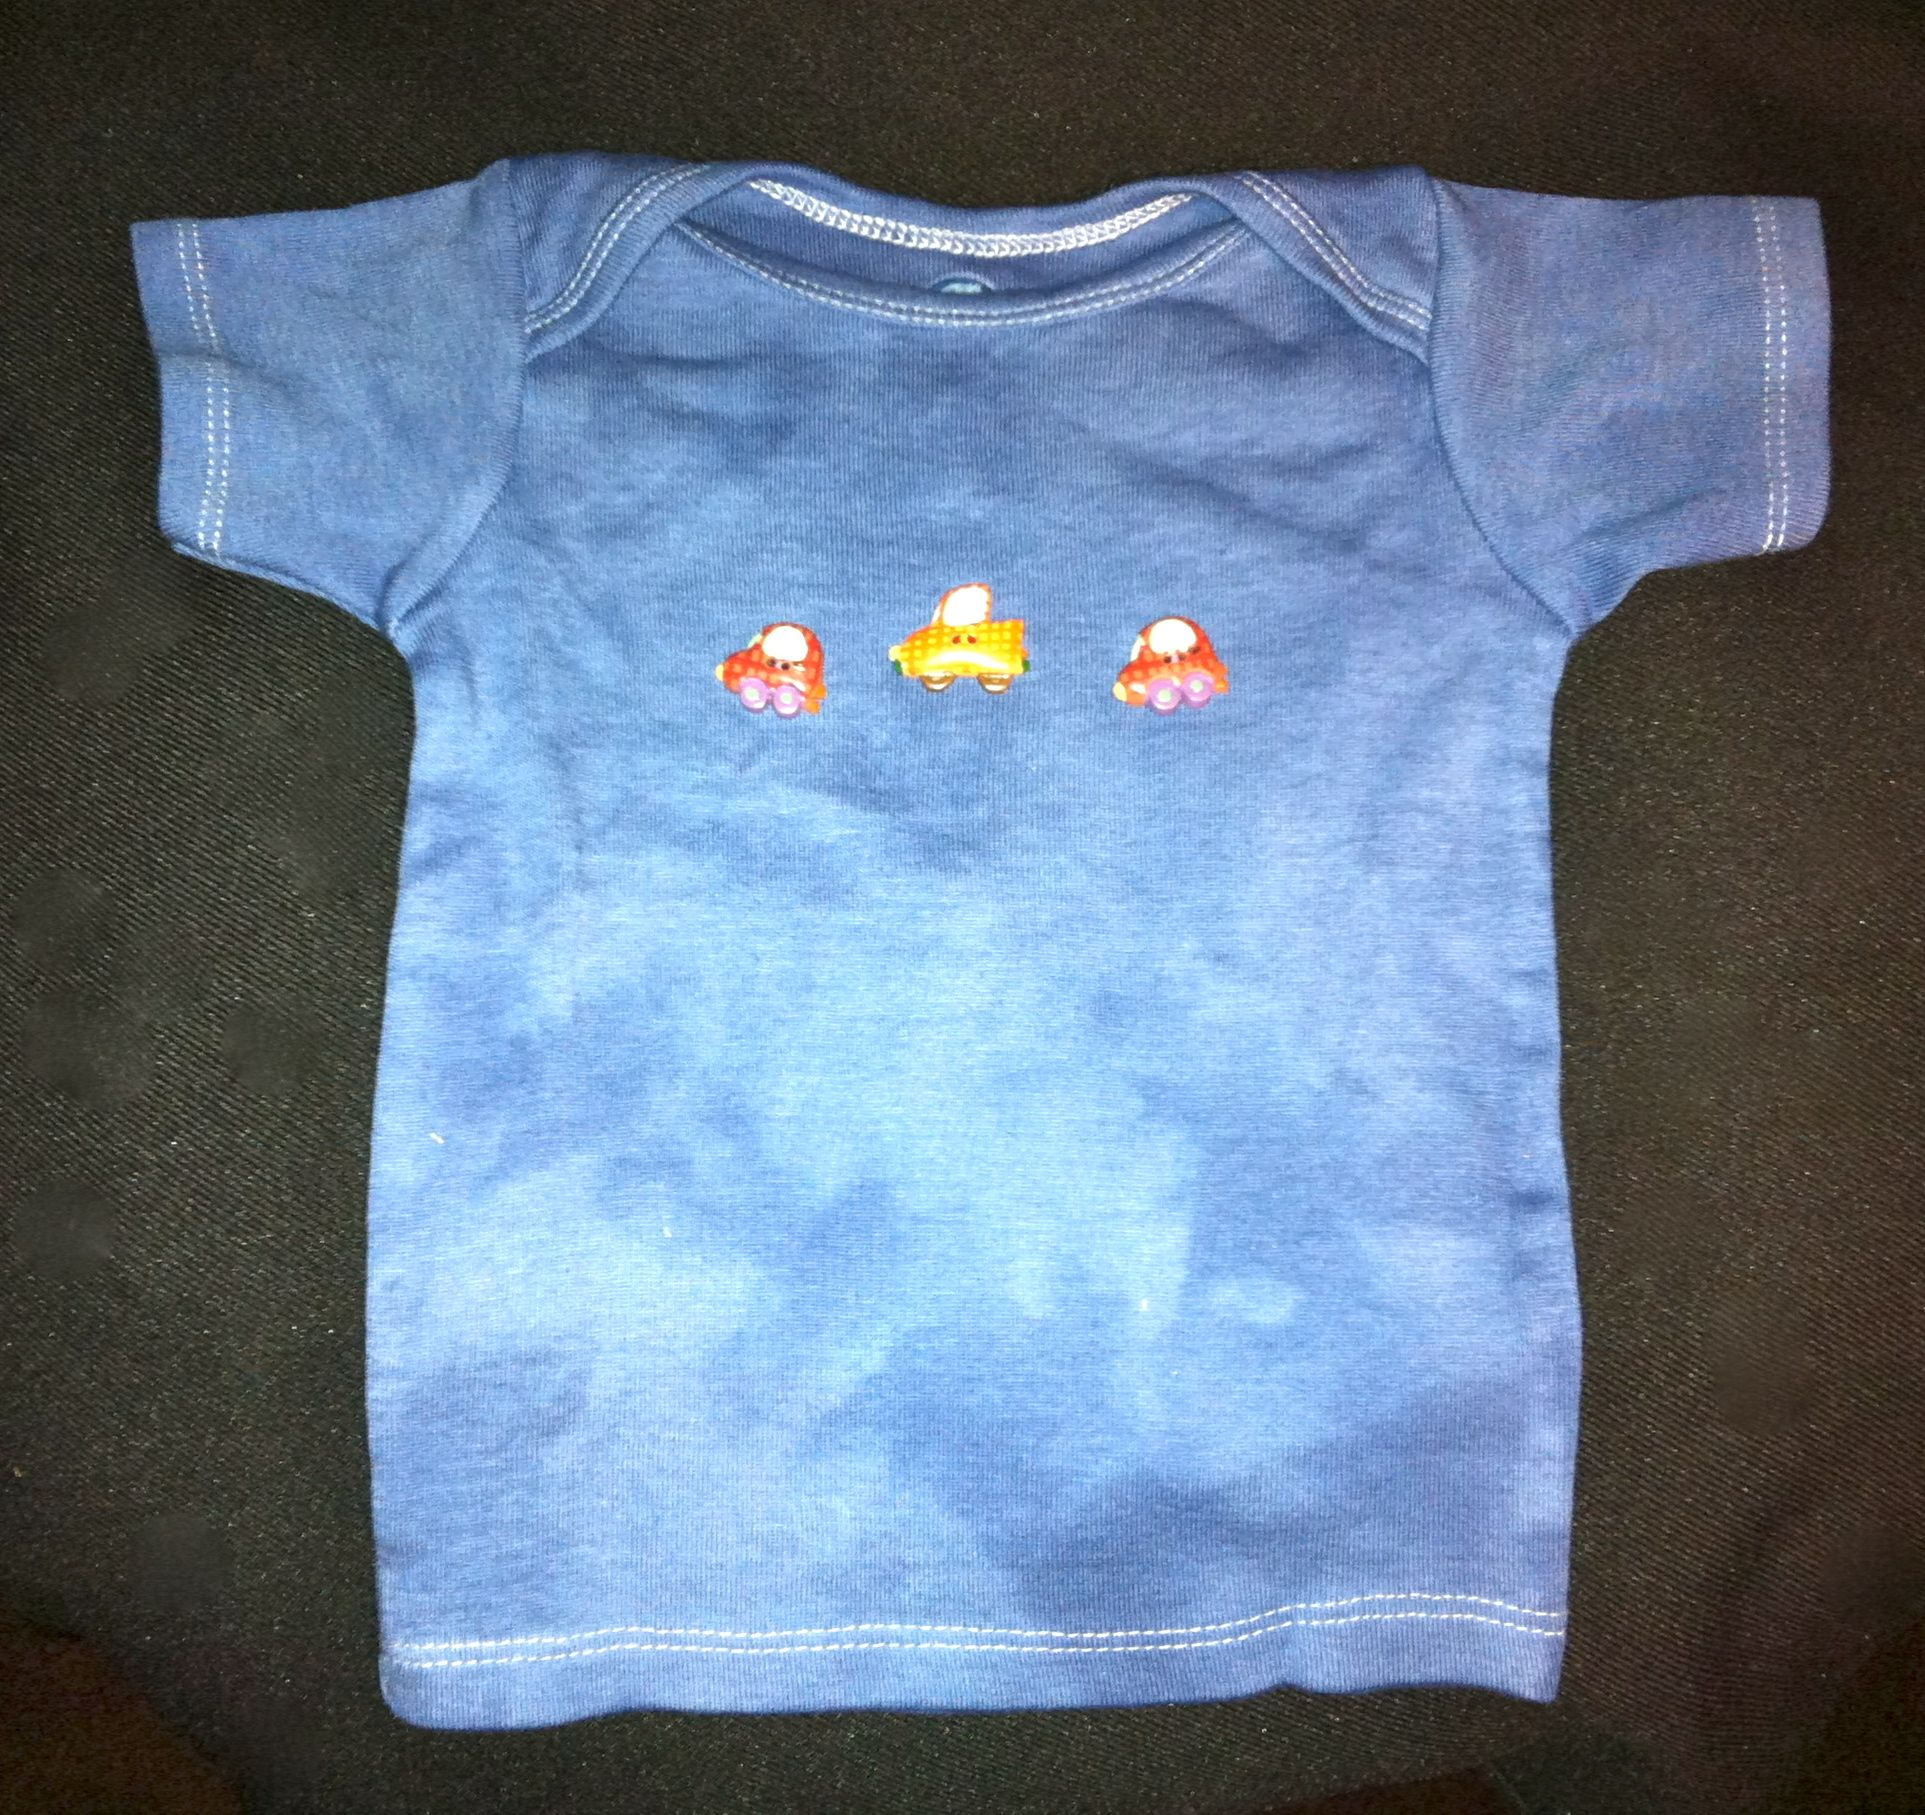 Infanttoddler tshirt hand dyed in blue discoloration normal